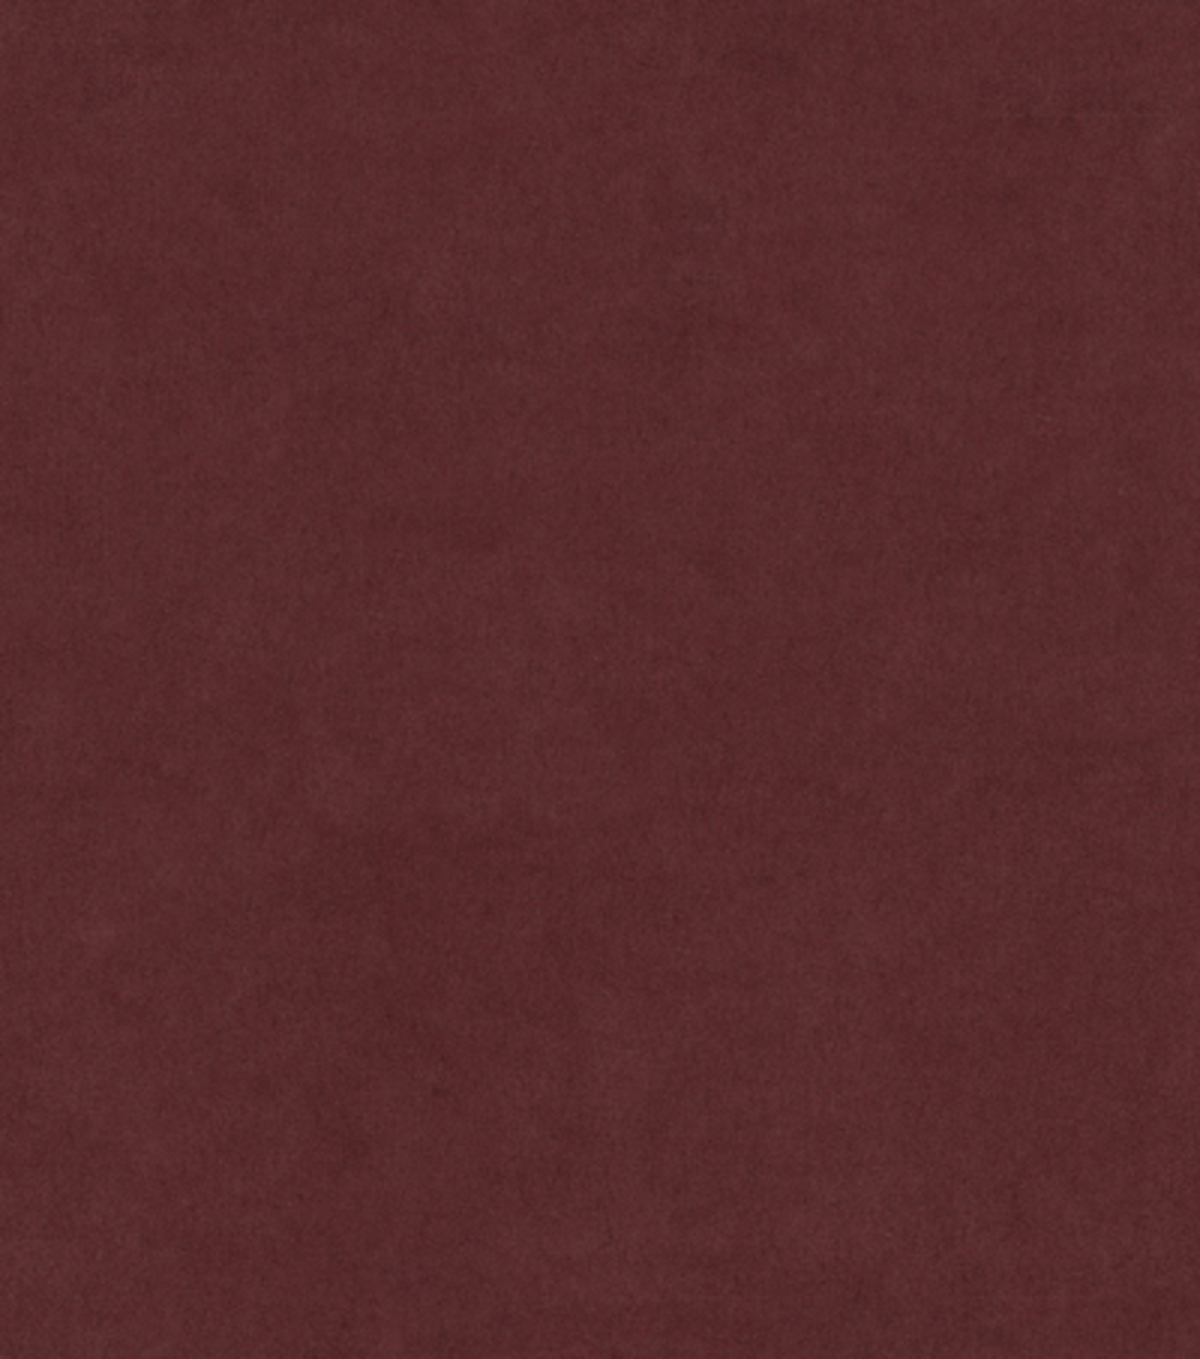 Home Decor 8\u0022x8\u0022 Fabric Swatch-Richloom Sig Series Chateau Raisin